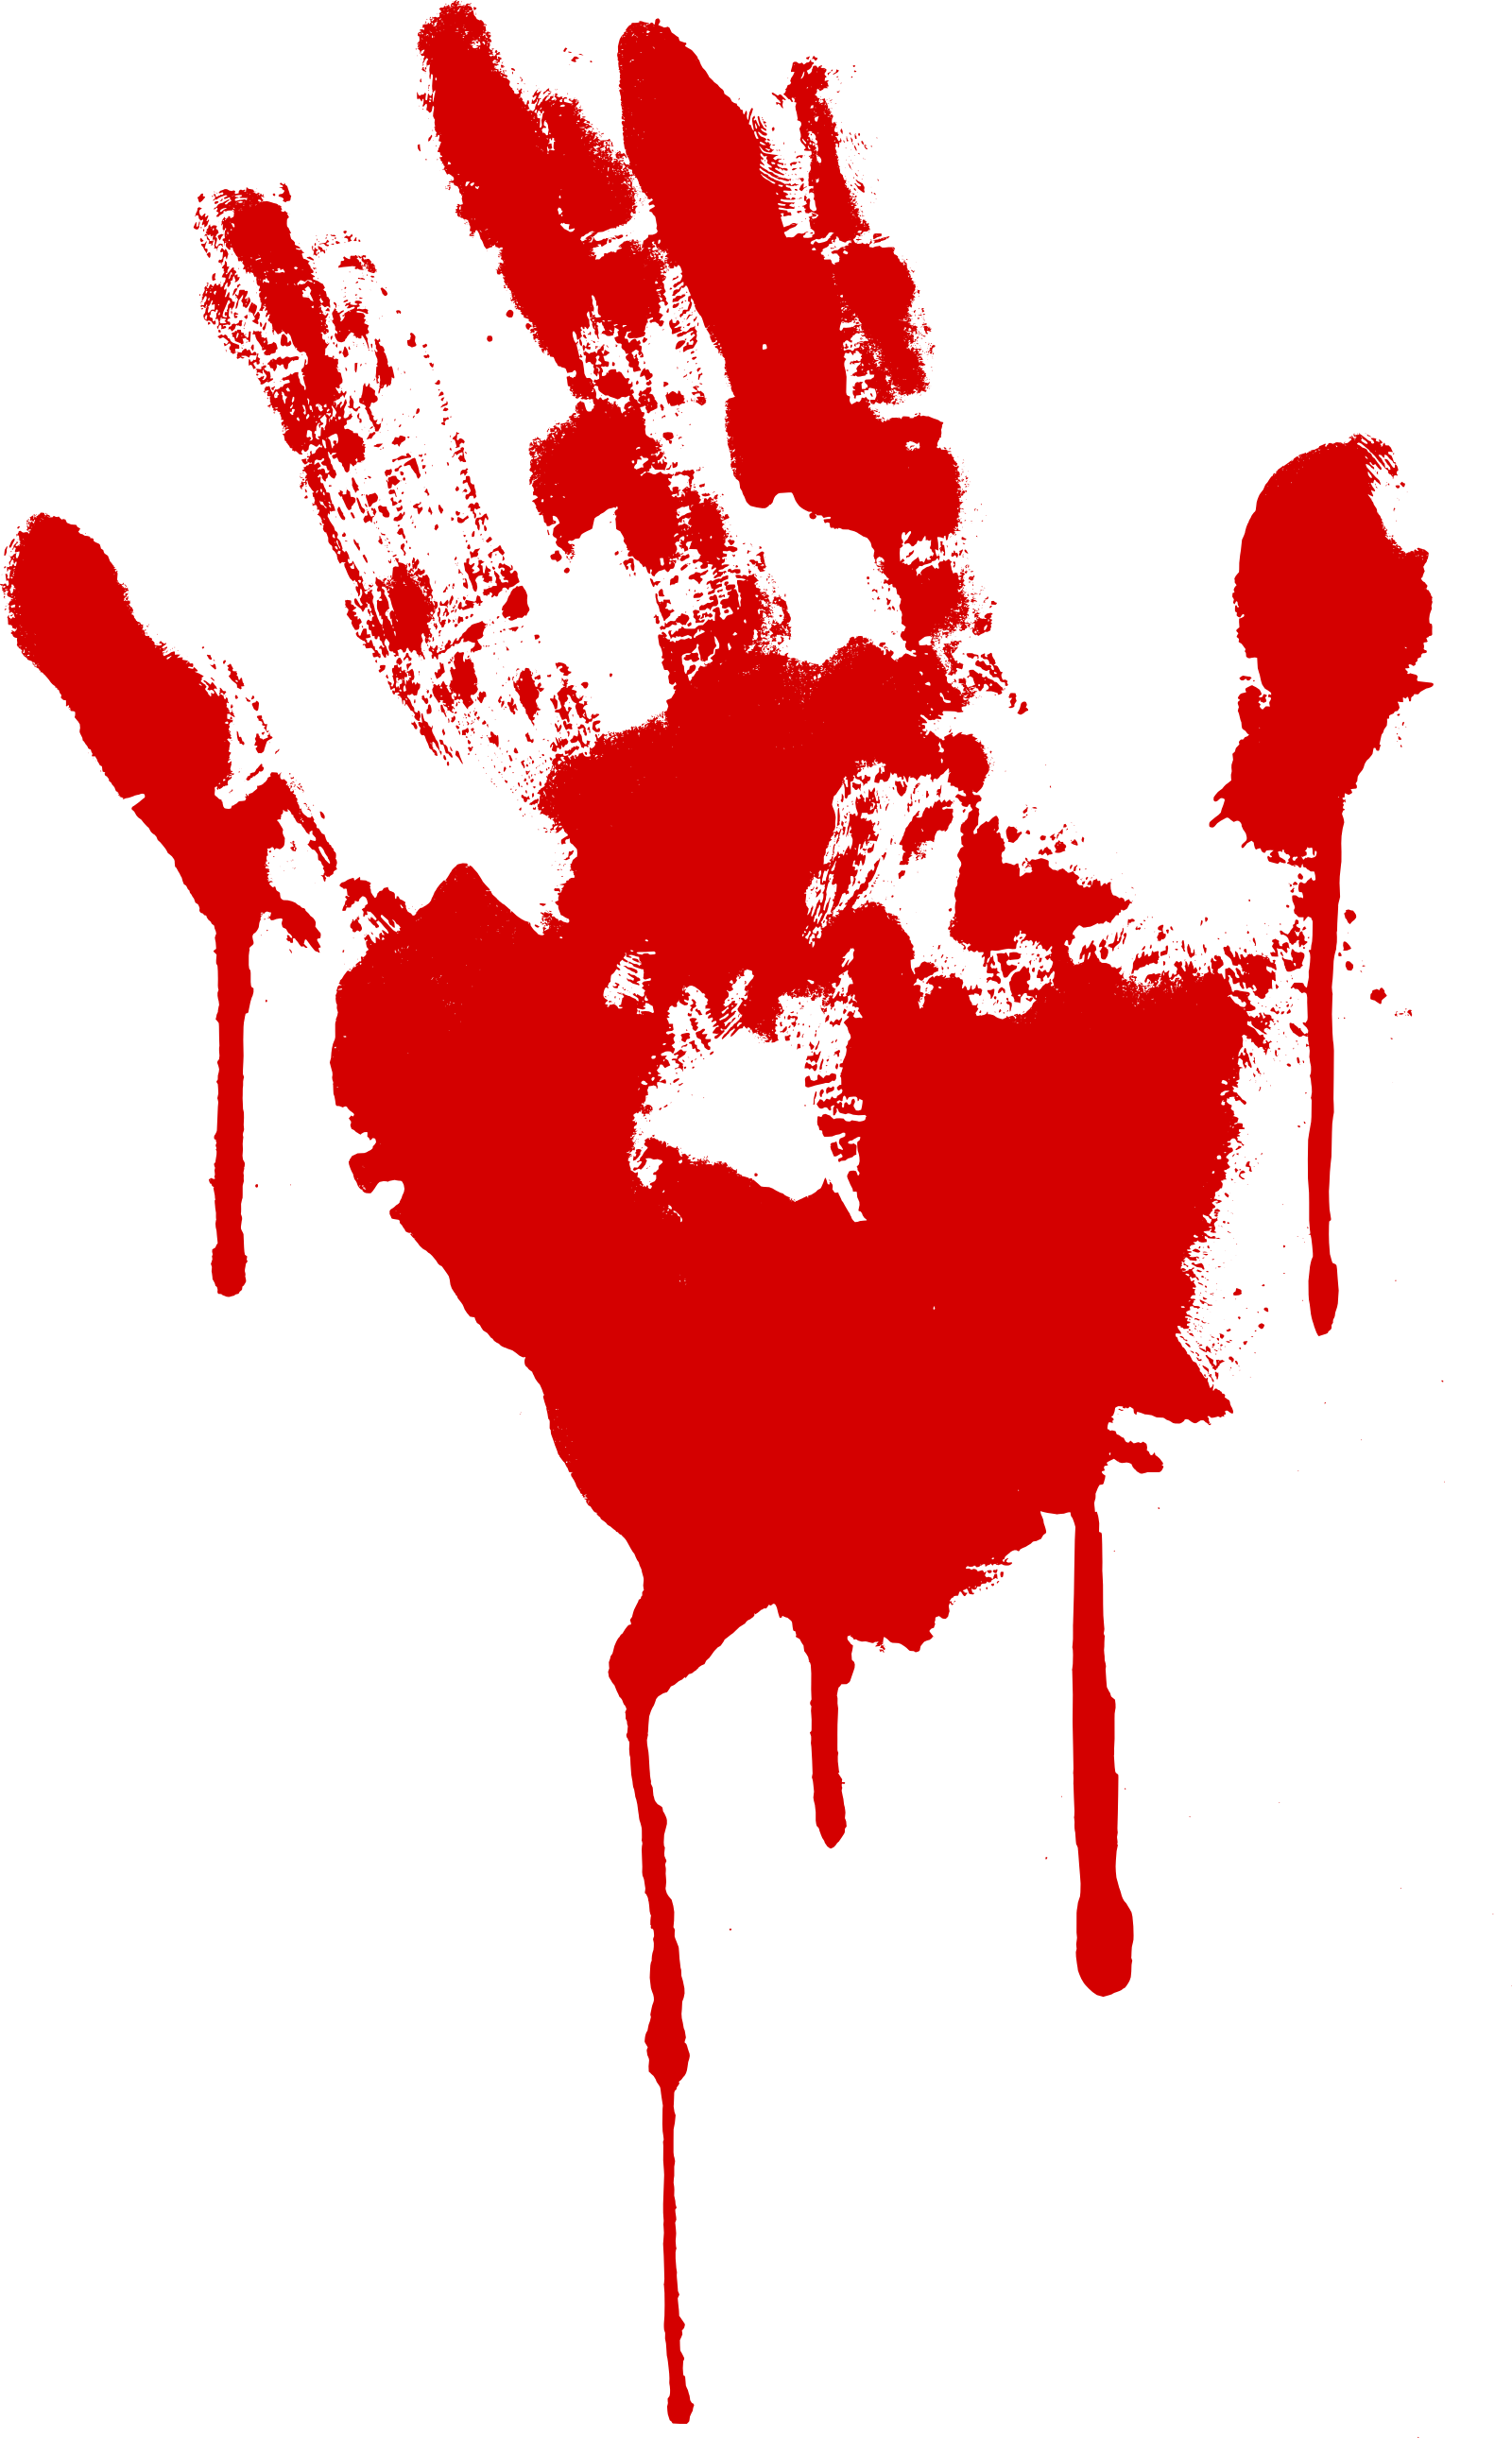 bloody frame png wwwpixsharkcom images galleries